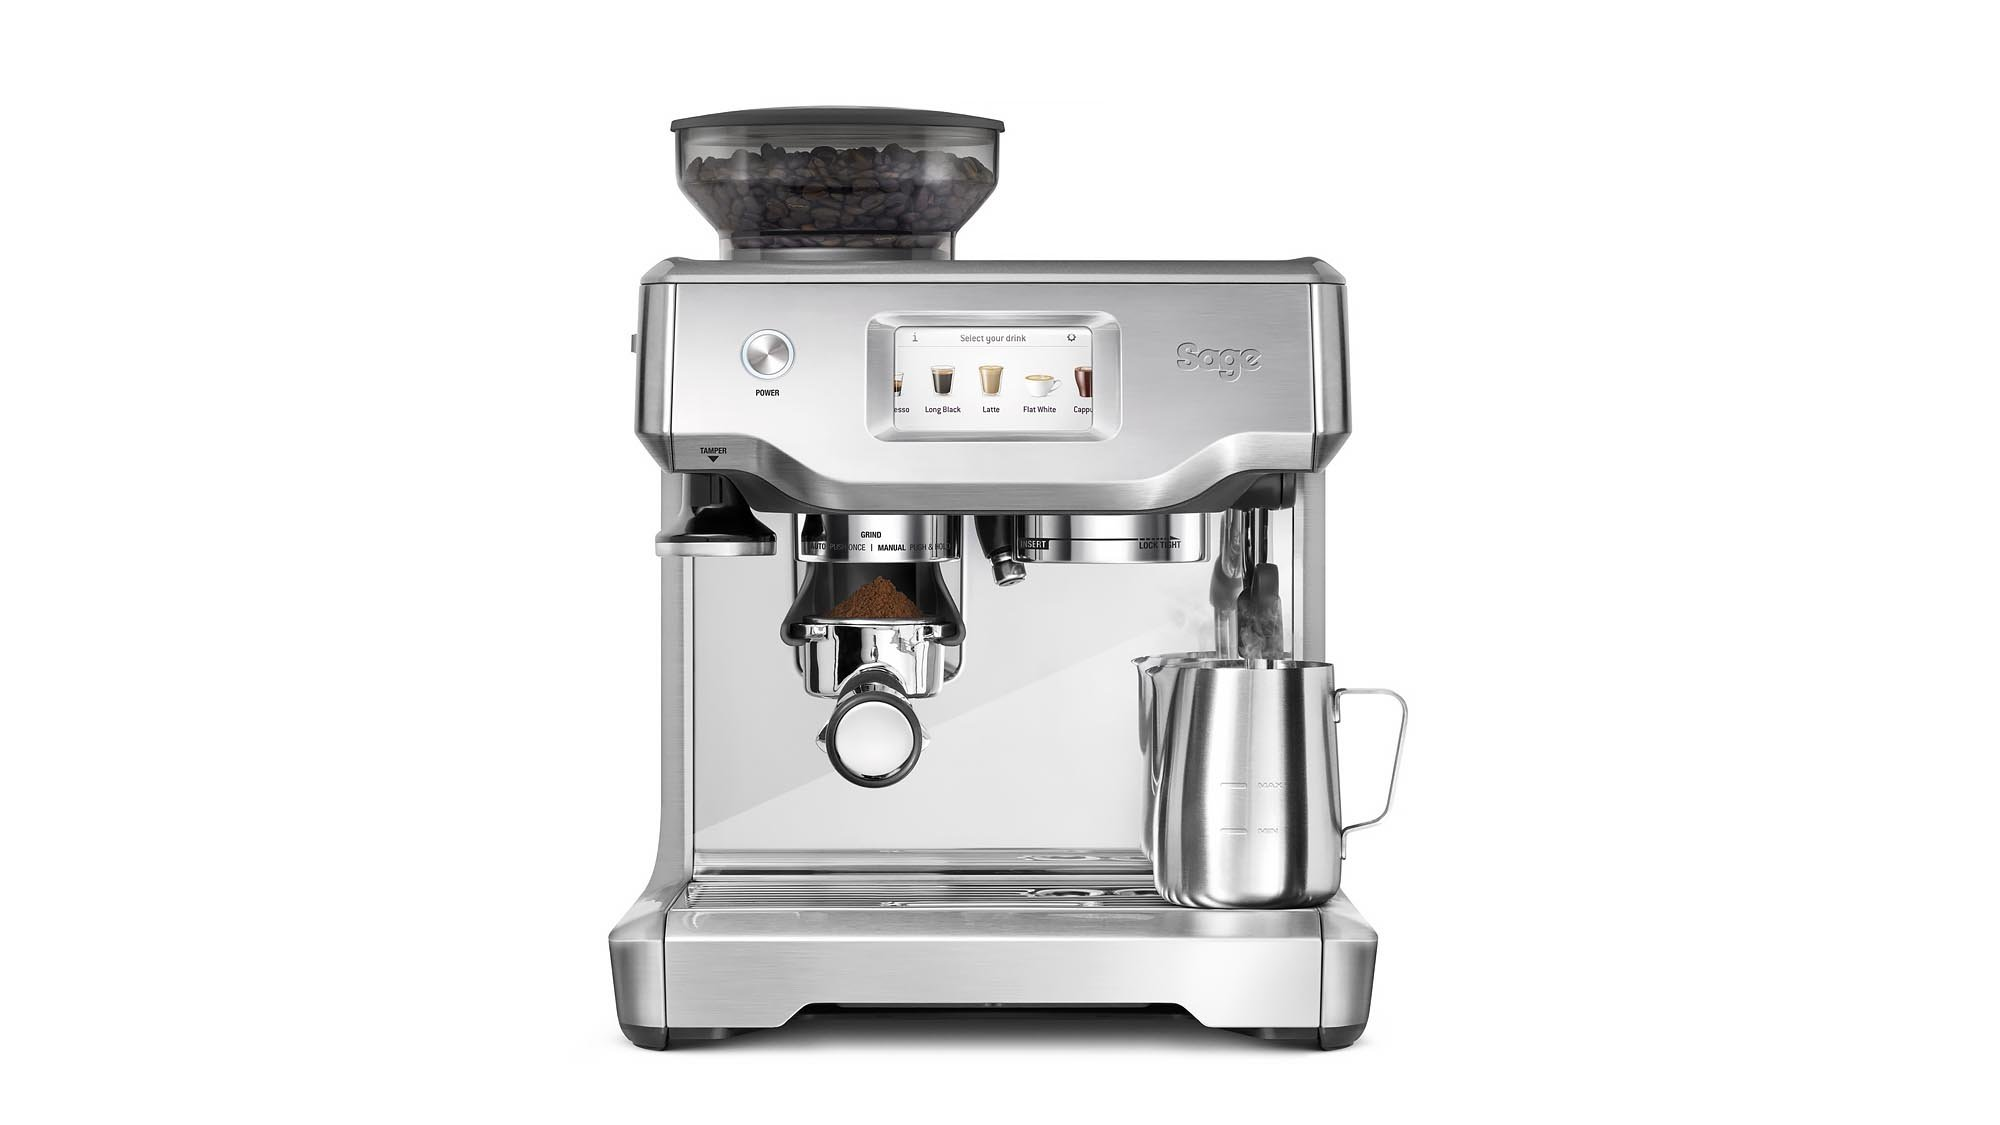 espresso coffee maker by heston blumenthal the barista touch review manual 30277